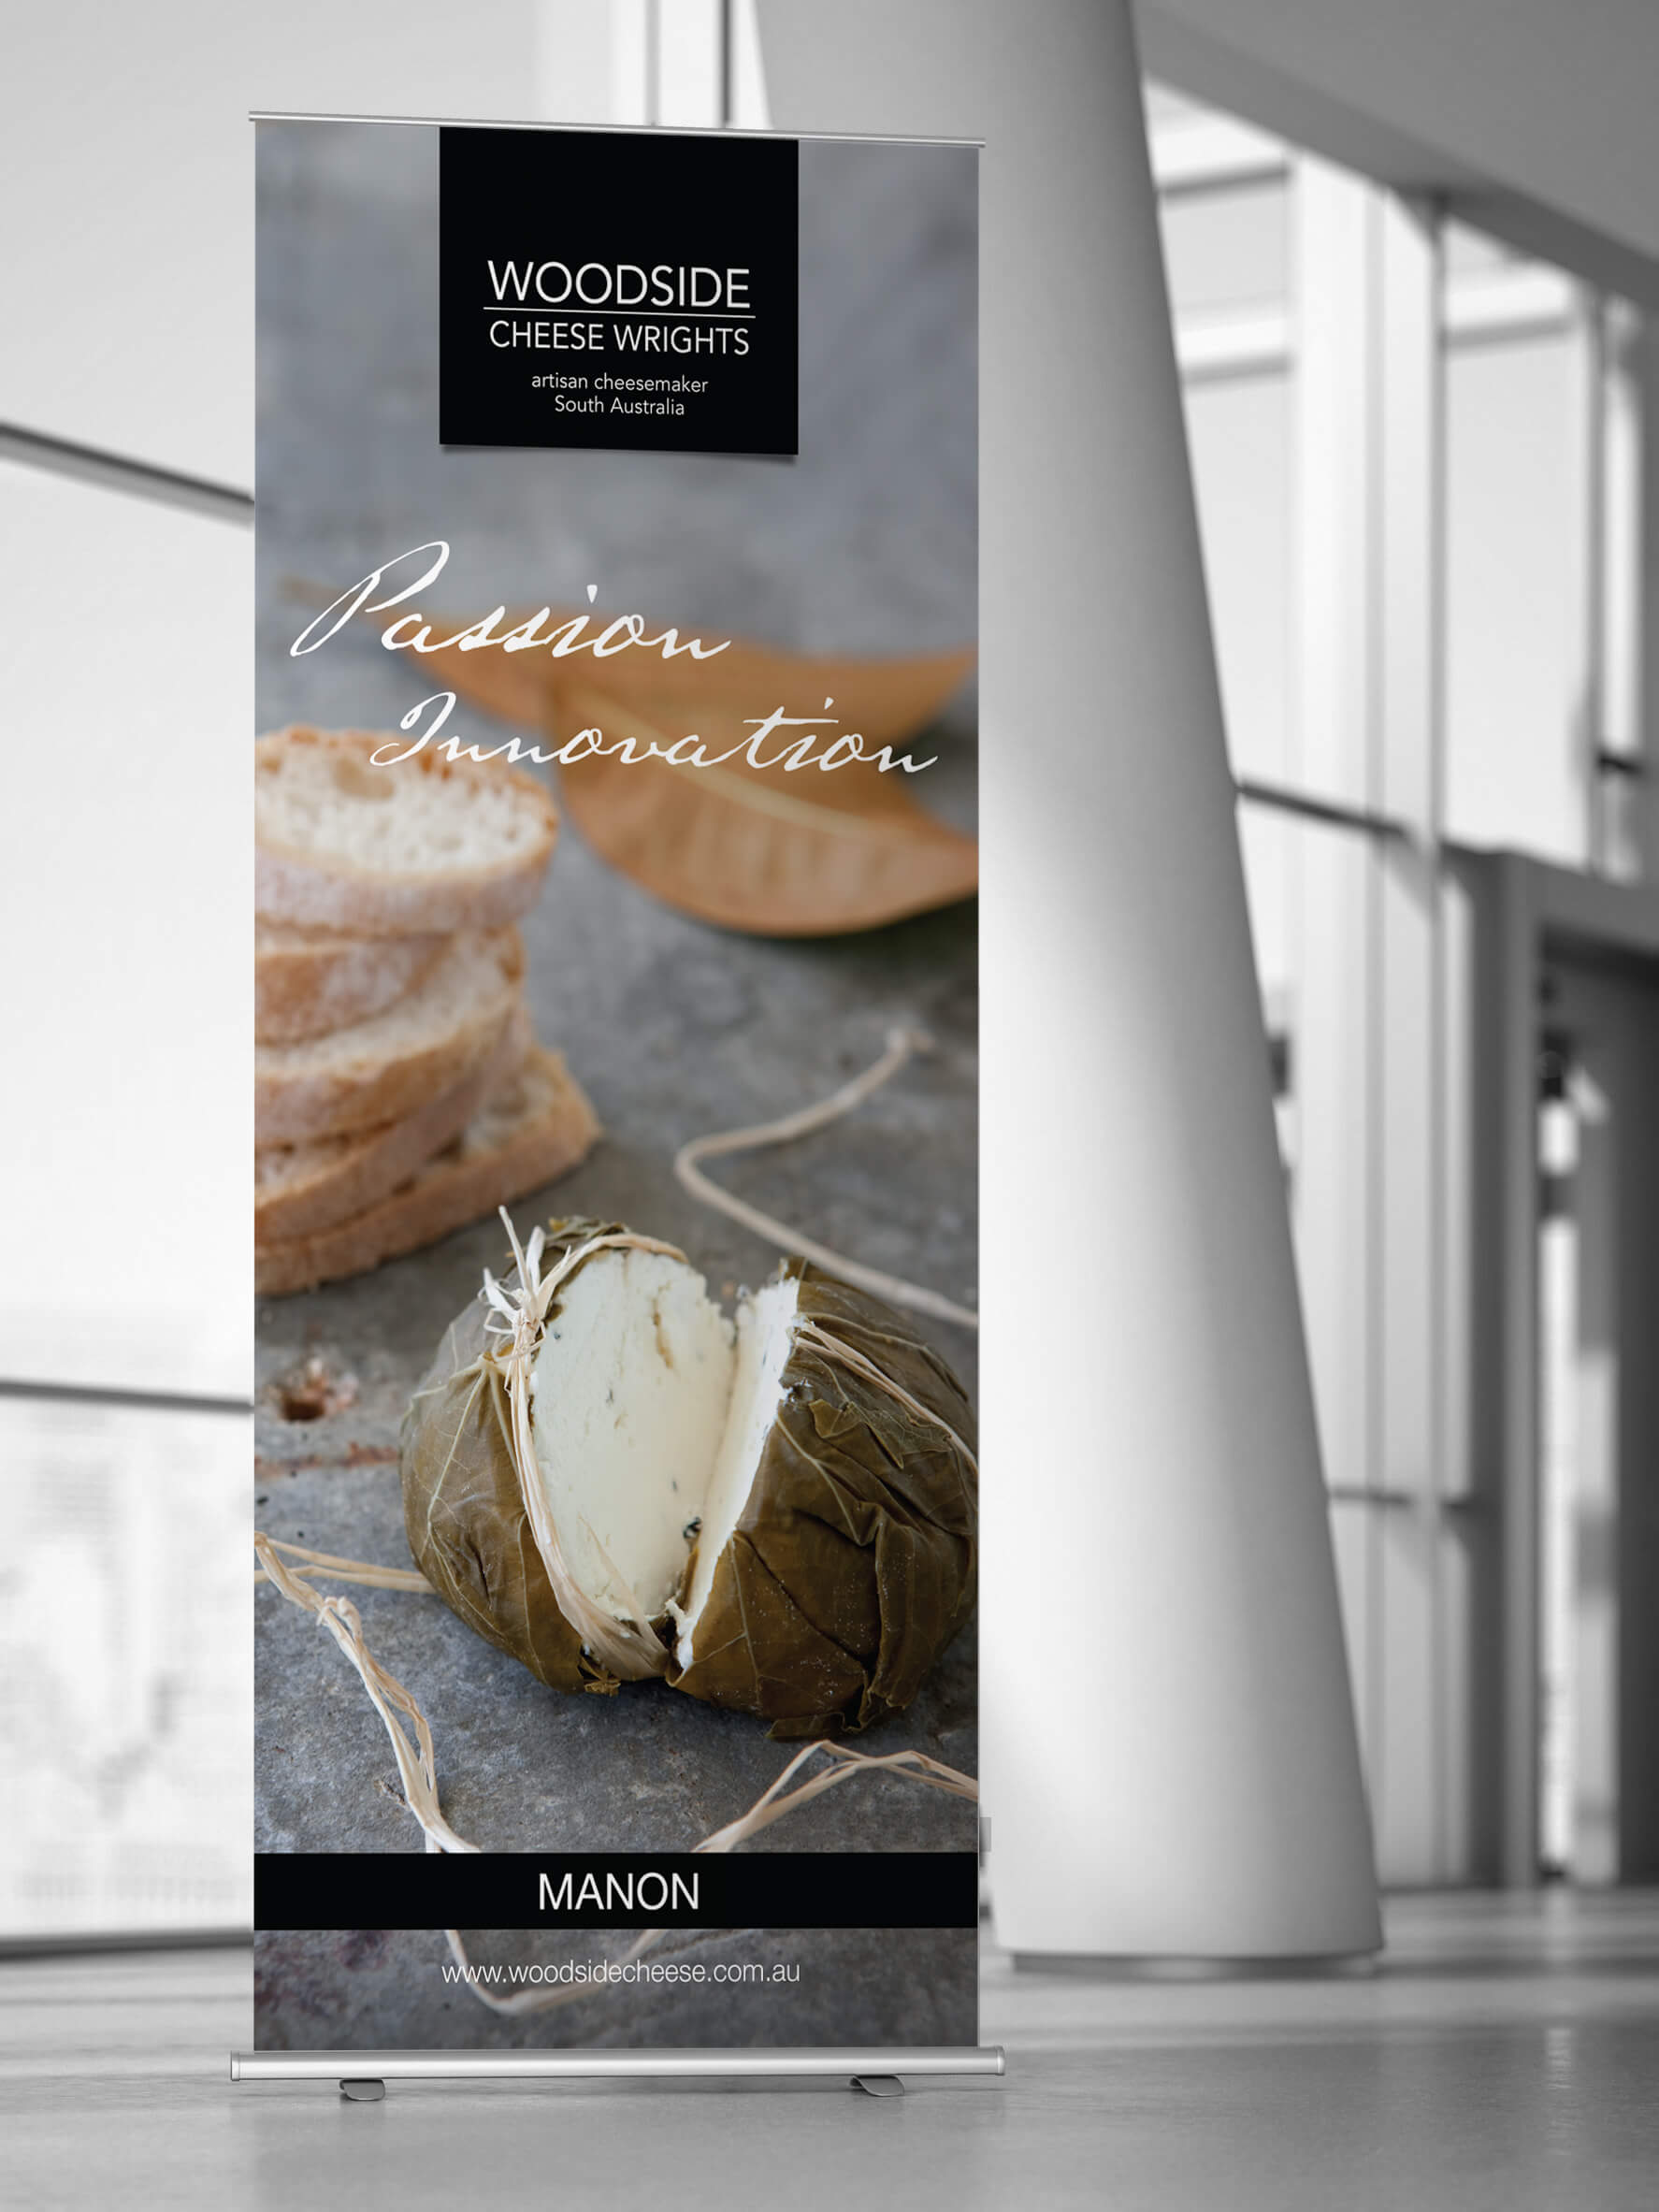 Icon Graphic Design Adelaide - business card design page image of Woodside Cheese pull-up display.